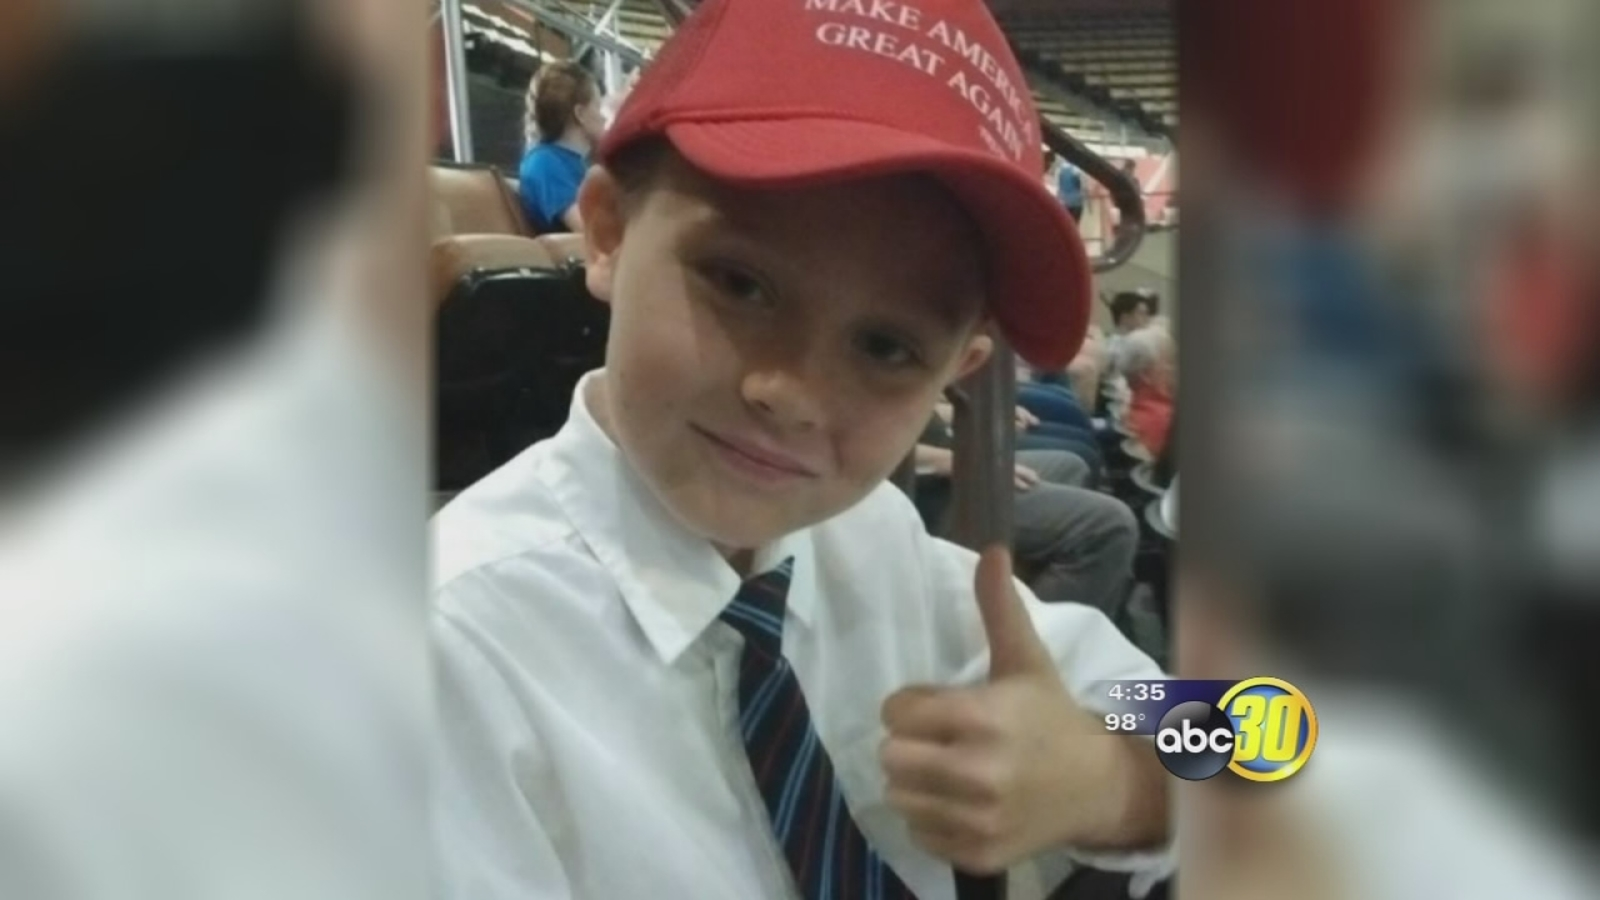 3bf0e8f6e5799 9-year-old banned from  Making America Great Again